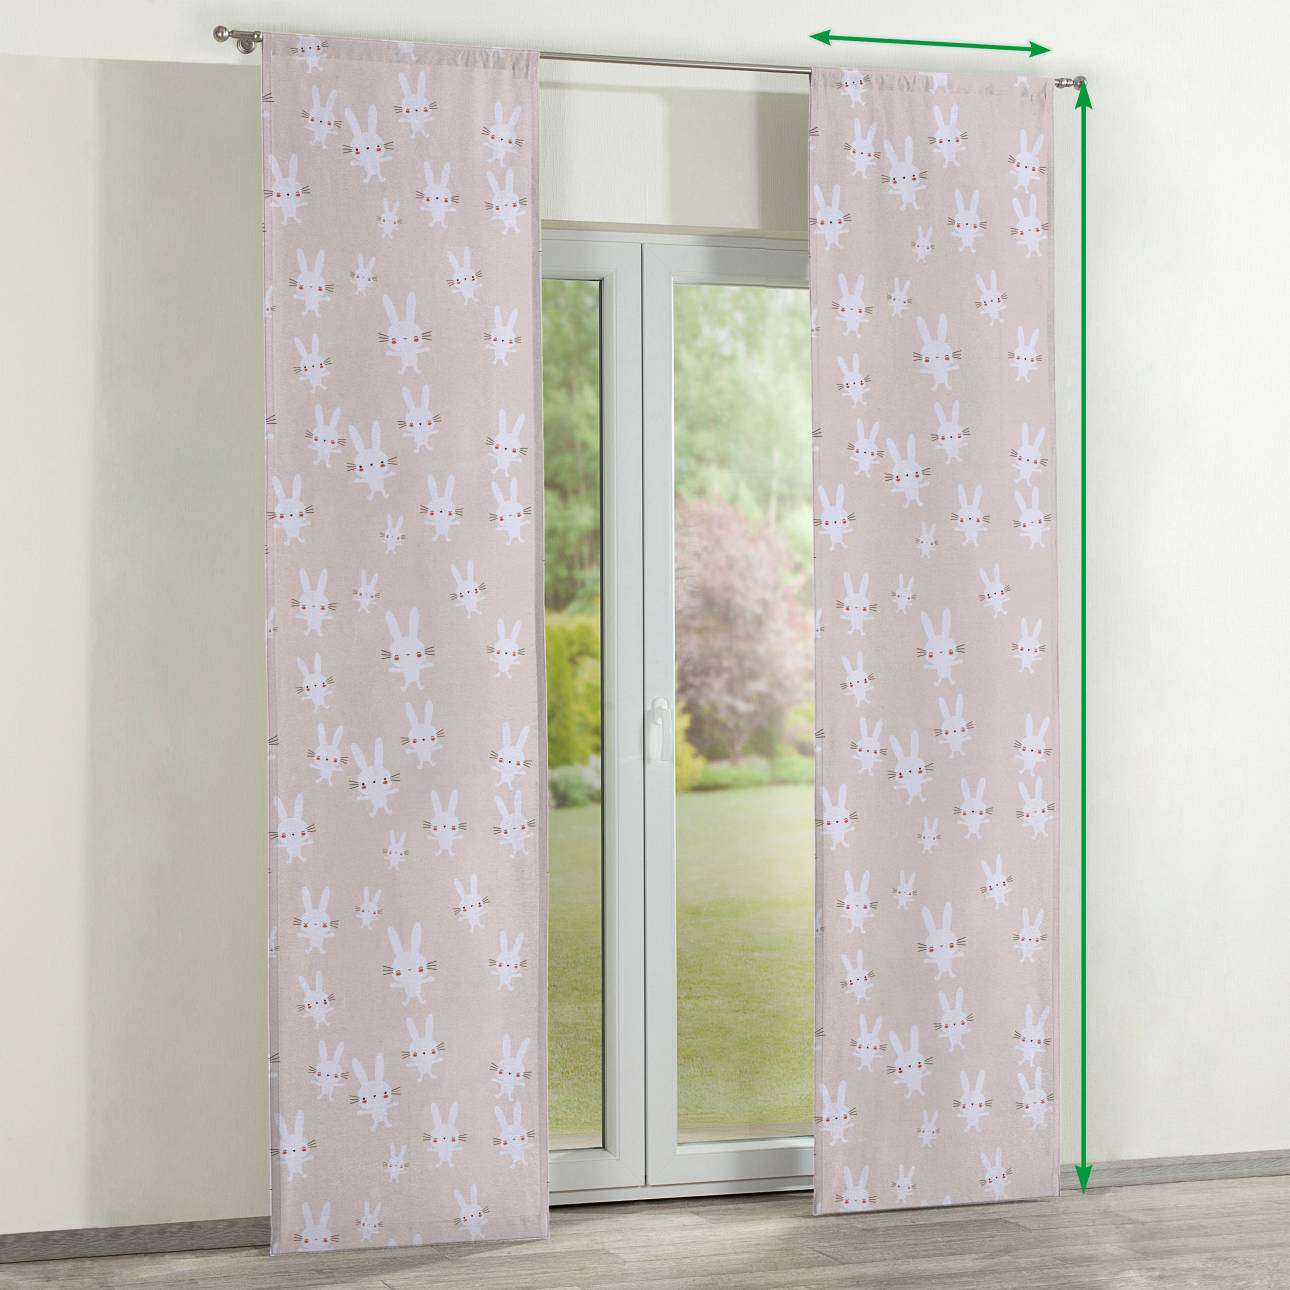 Slot panel curtains – Set of 2 in collection Apanona, fabric: 151-00